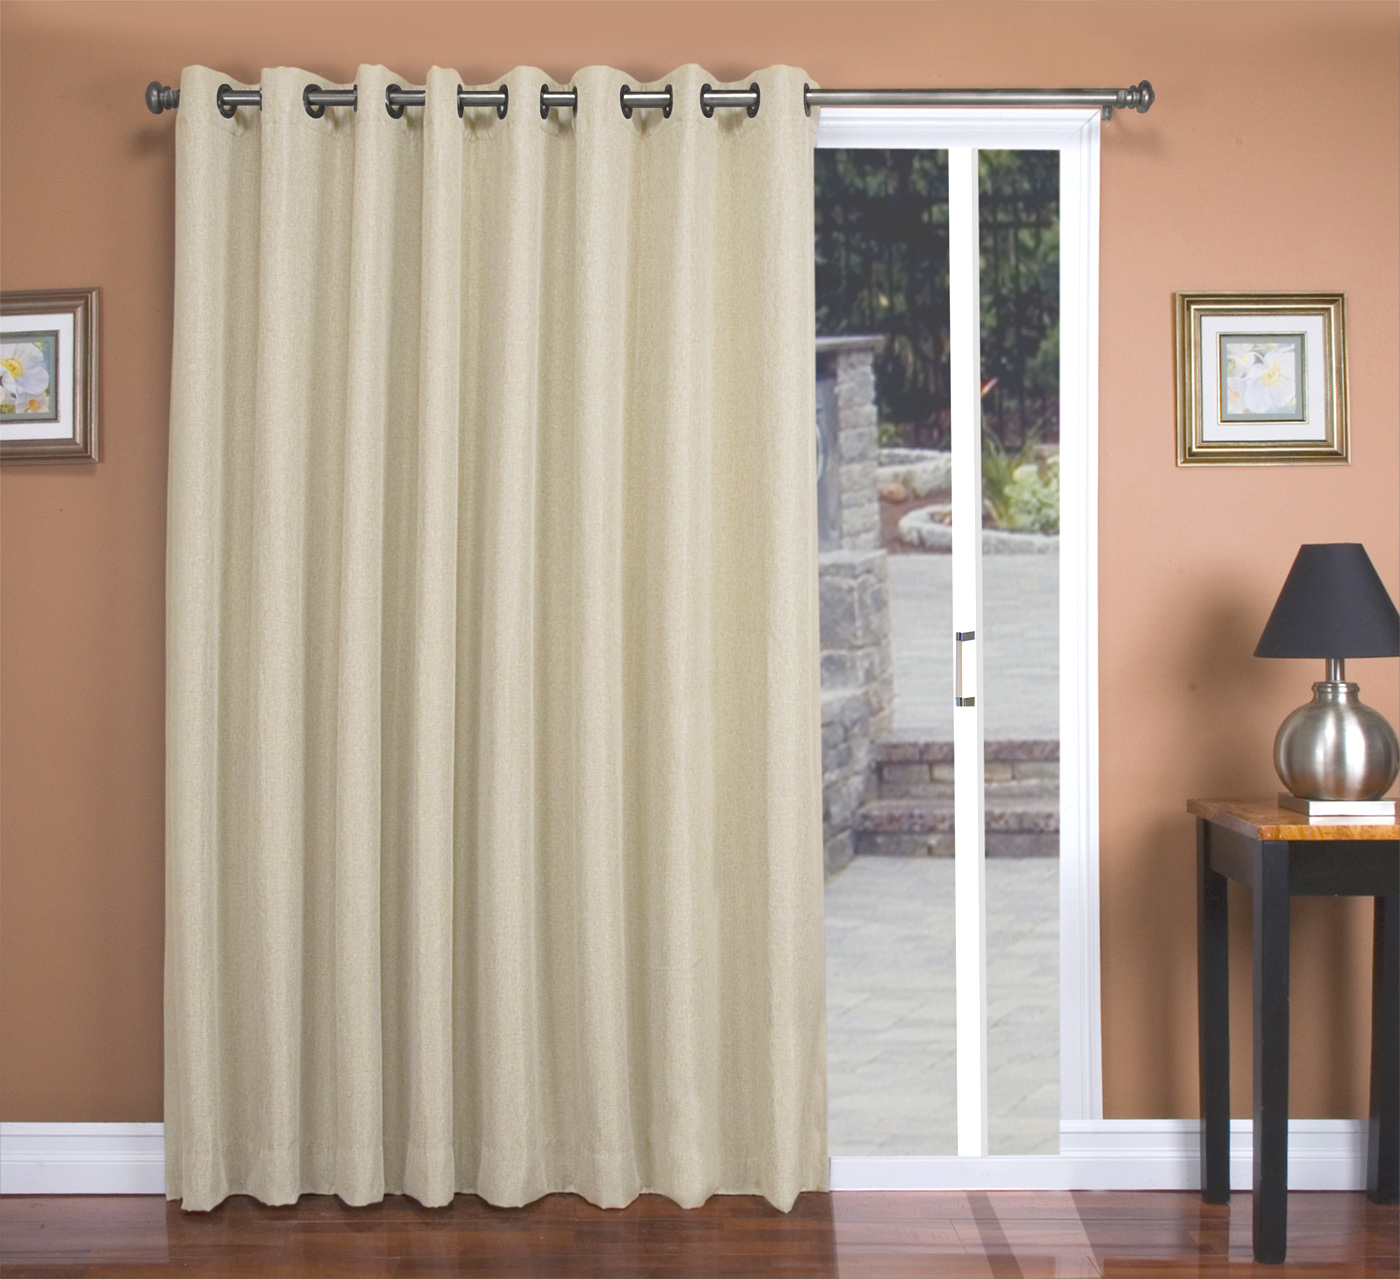 drapes sliding curtain curtains within deck home ideas of glass photos wooden patio redesign the pattern door rods with gallery and